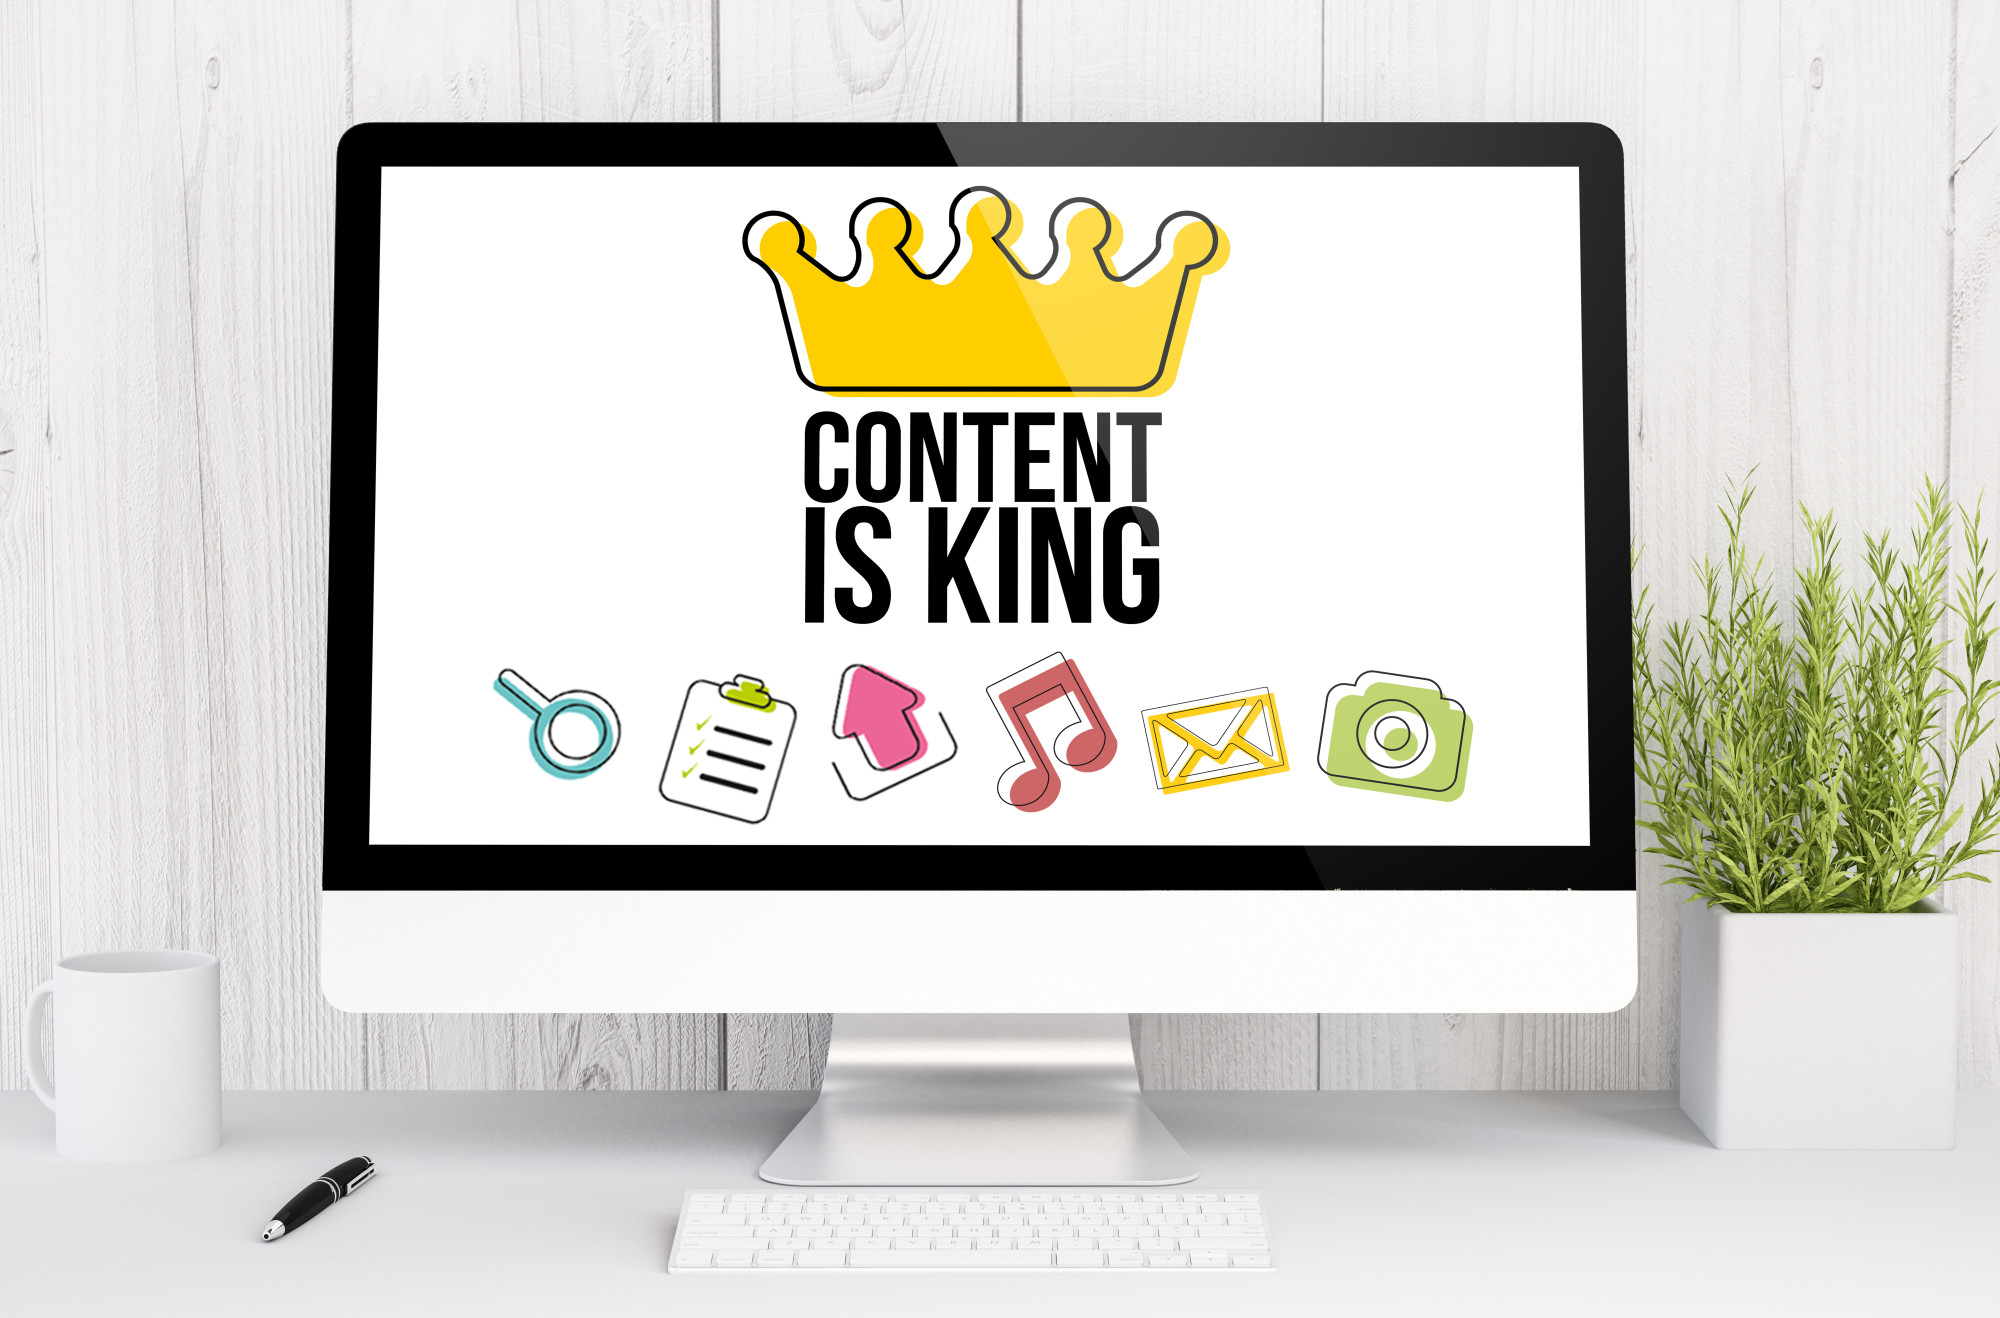 Engaging Content Visualized on a Mac